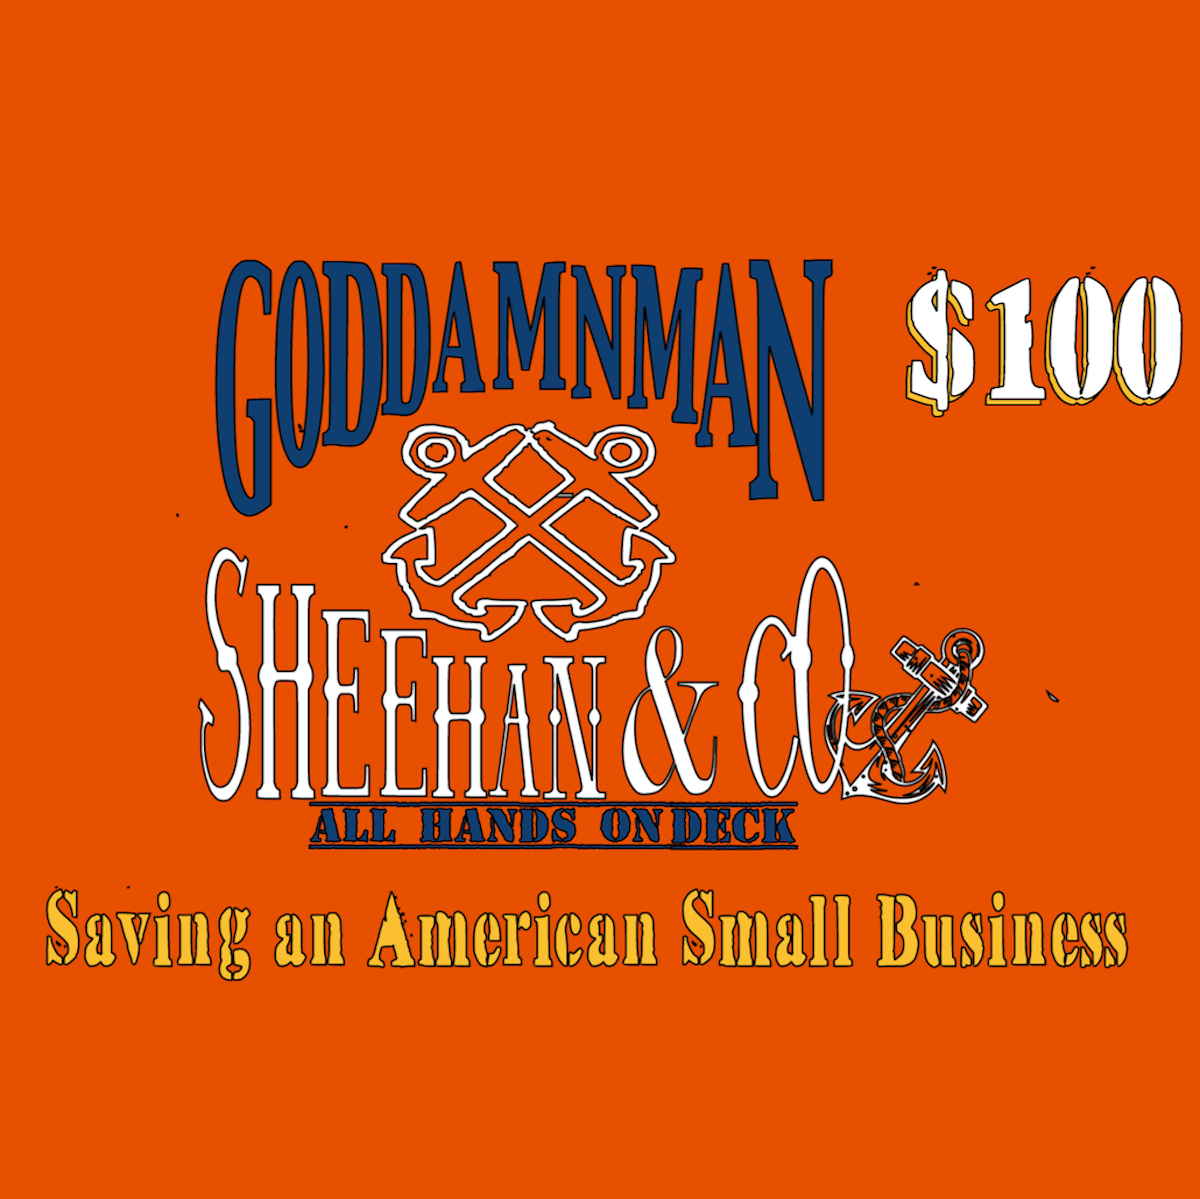 $150 Thermal Incentive Goddamn Man and Sheehan Investment Card